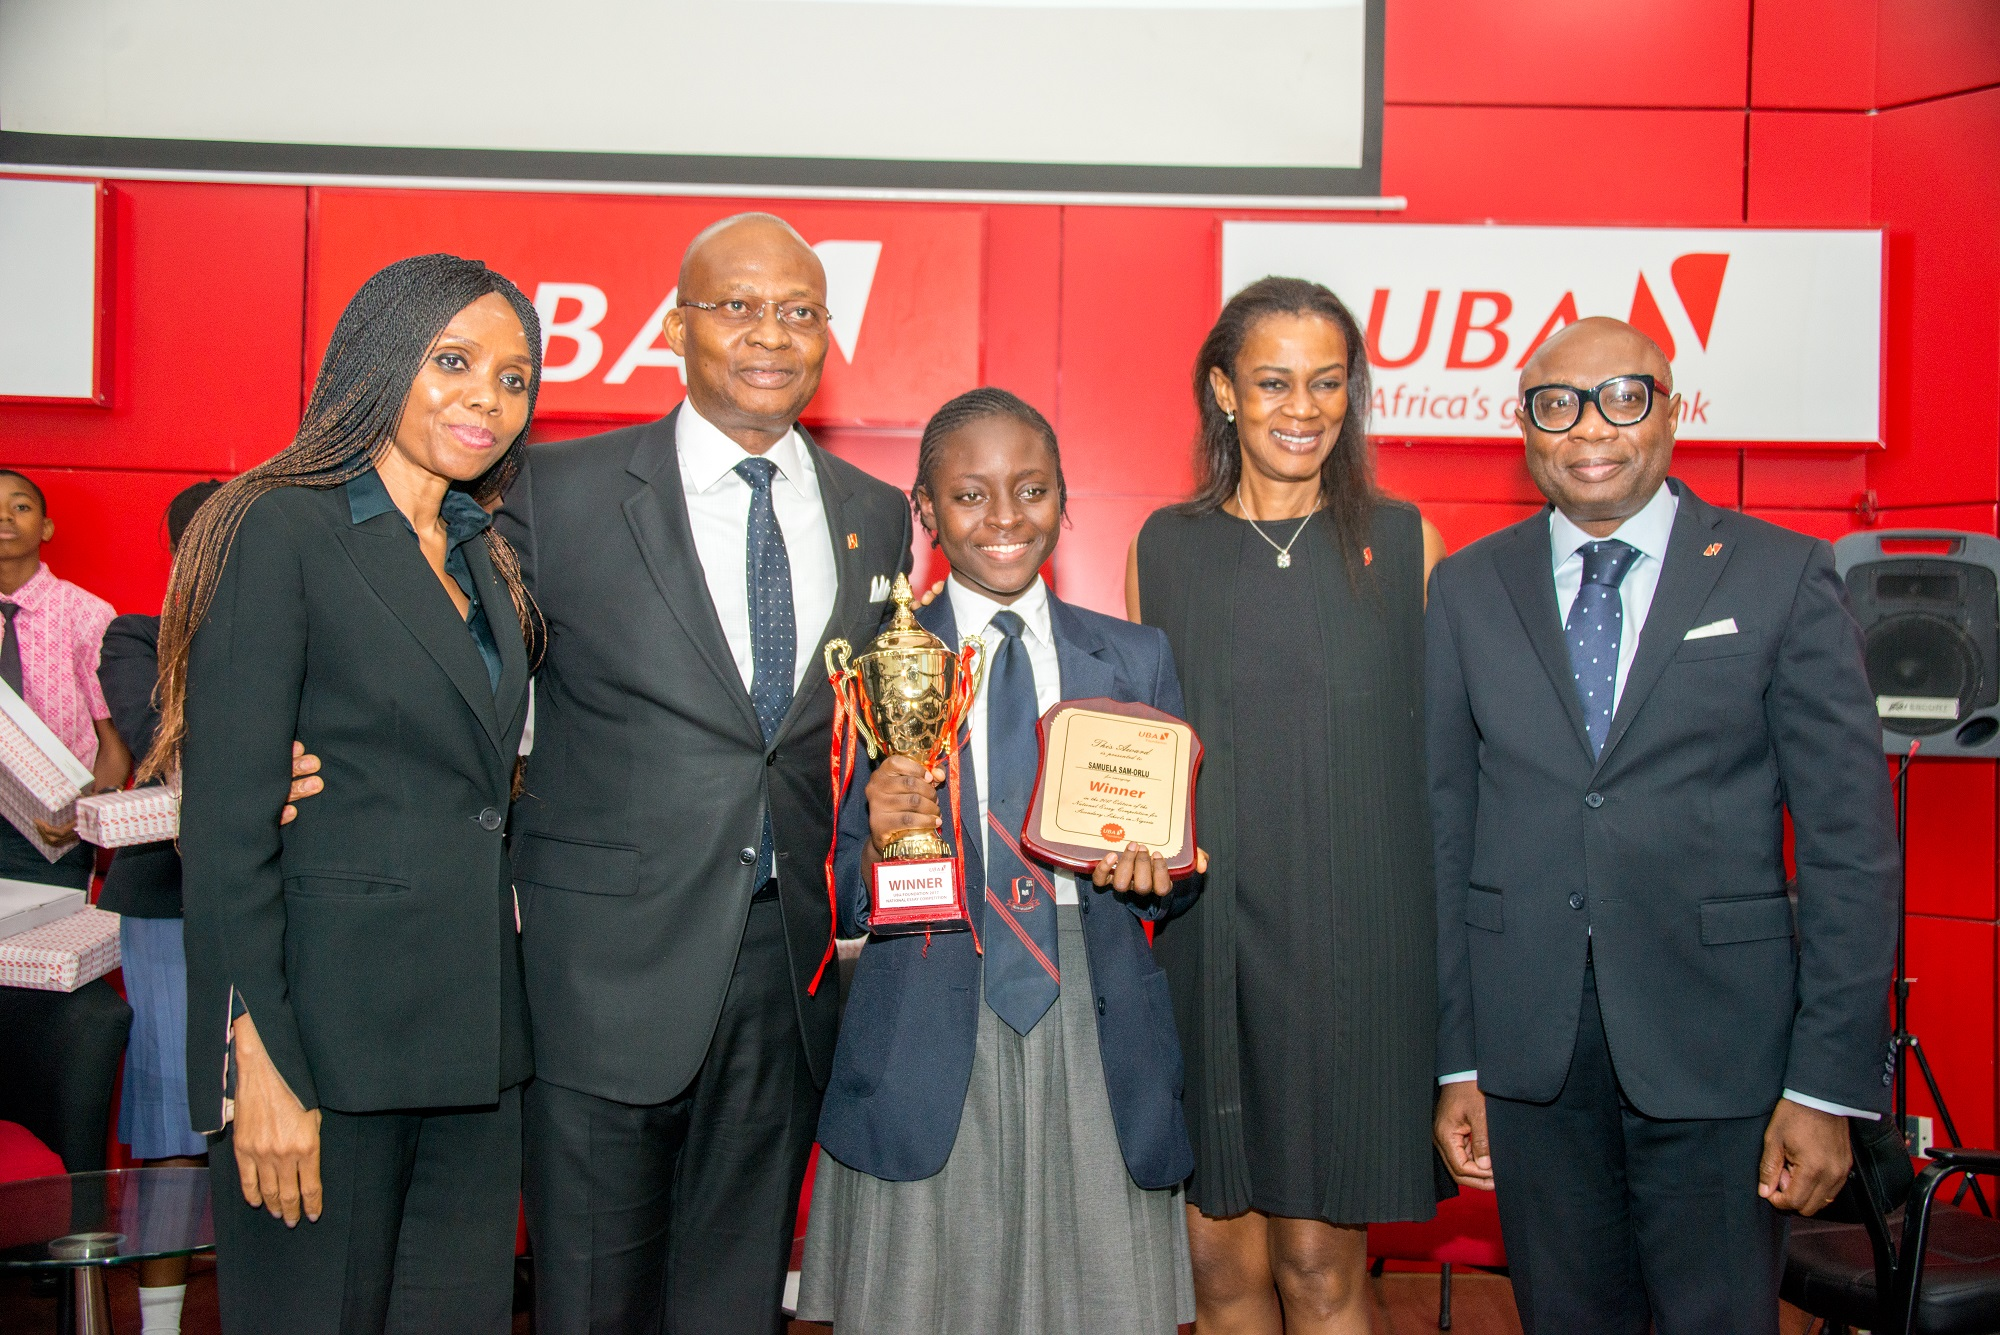 l-r:  Group Head, Human Resources, United Bank for Africa (UBA) Plc, Patricia Aderibigbe; GMD/CEO, UBA Plc, Mr. Kennedy Uzoka; Overall Winner of the 2017 UBA Foundation National Essay Competition and Student of British Nigerian Academy, Miss Samuella Sam-Orlu; Managing Director/CEO, UBA Foundation, Bola Atta; and Group Head, Secretariat & Corporate Services, UBA Plc, Bili Odum during the Grand finale and prize giving ceremony of the UBA Foundation National Essay Competition, held at UBA House in Lagos on Monday